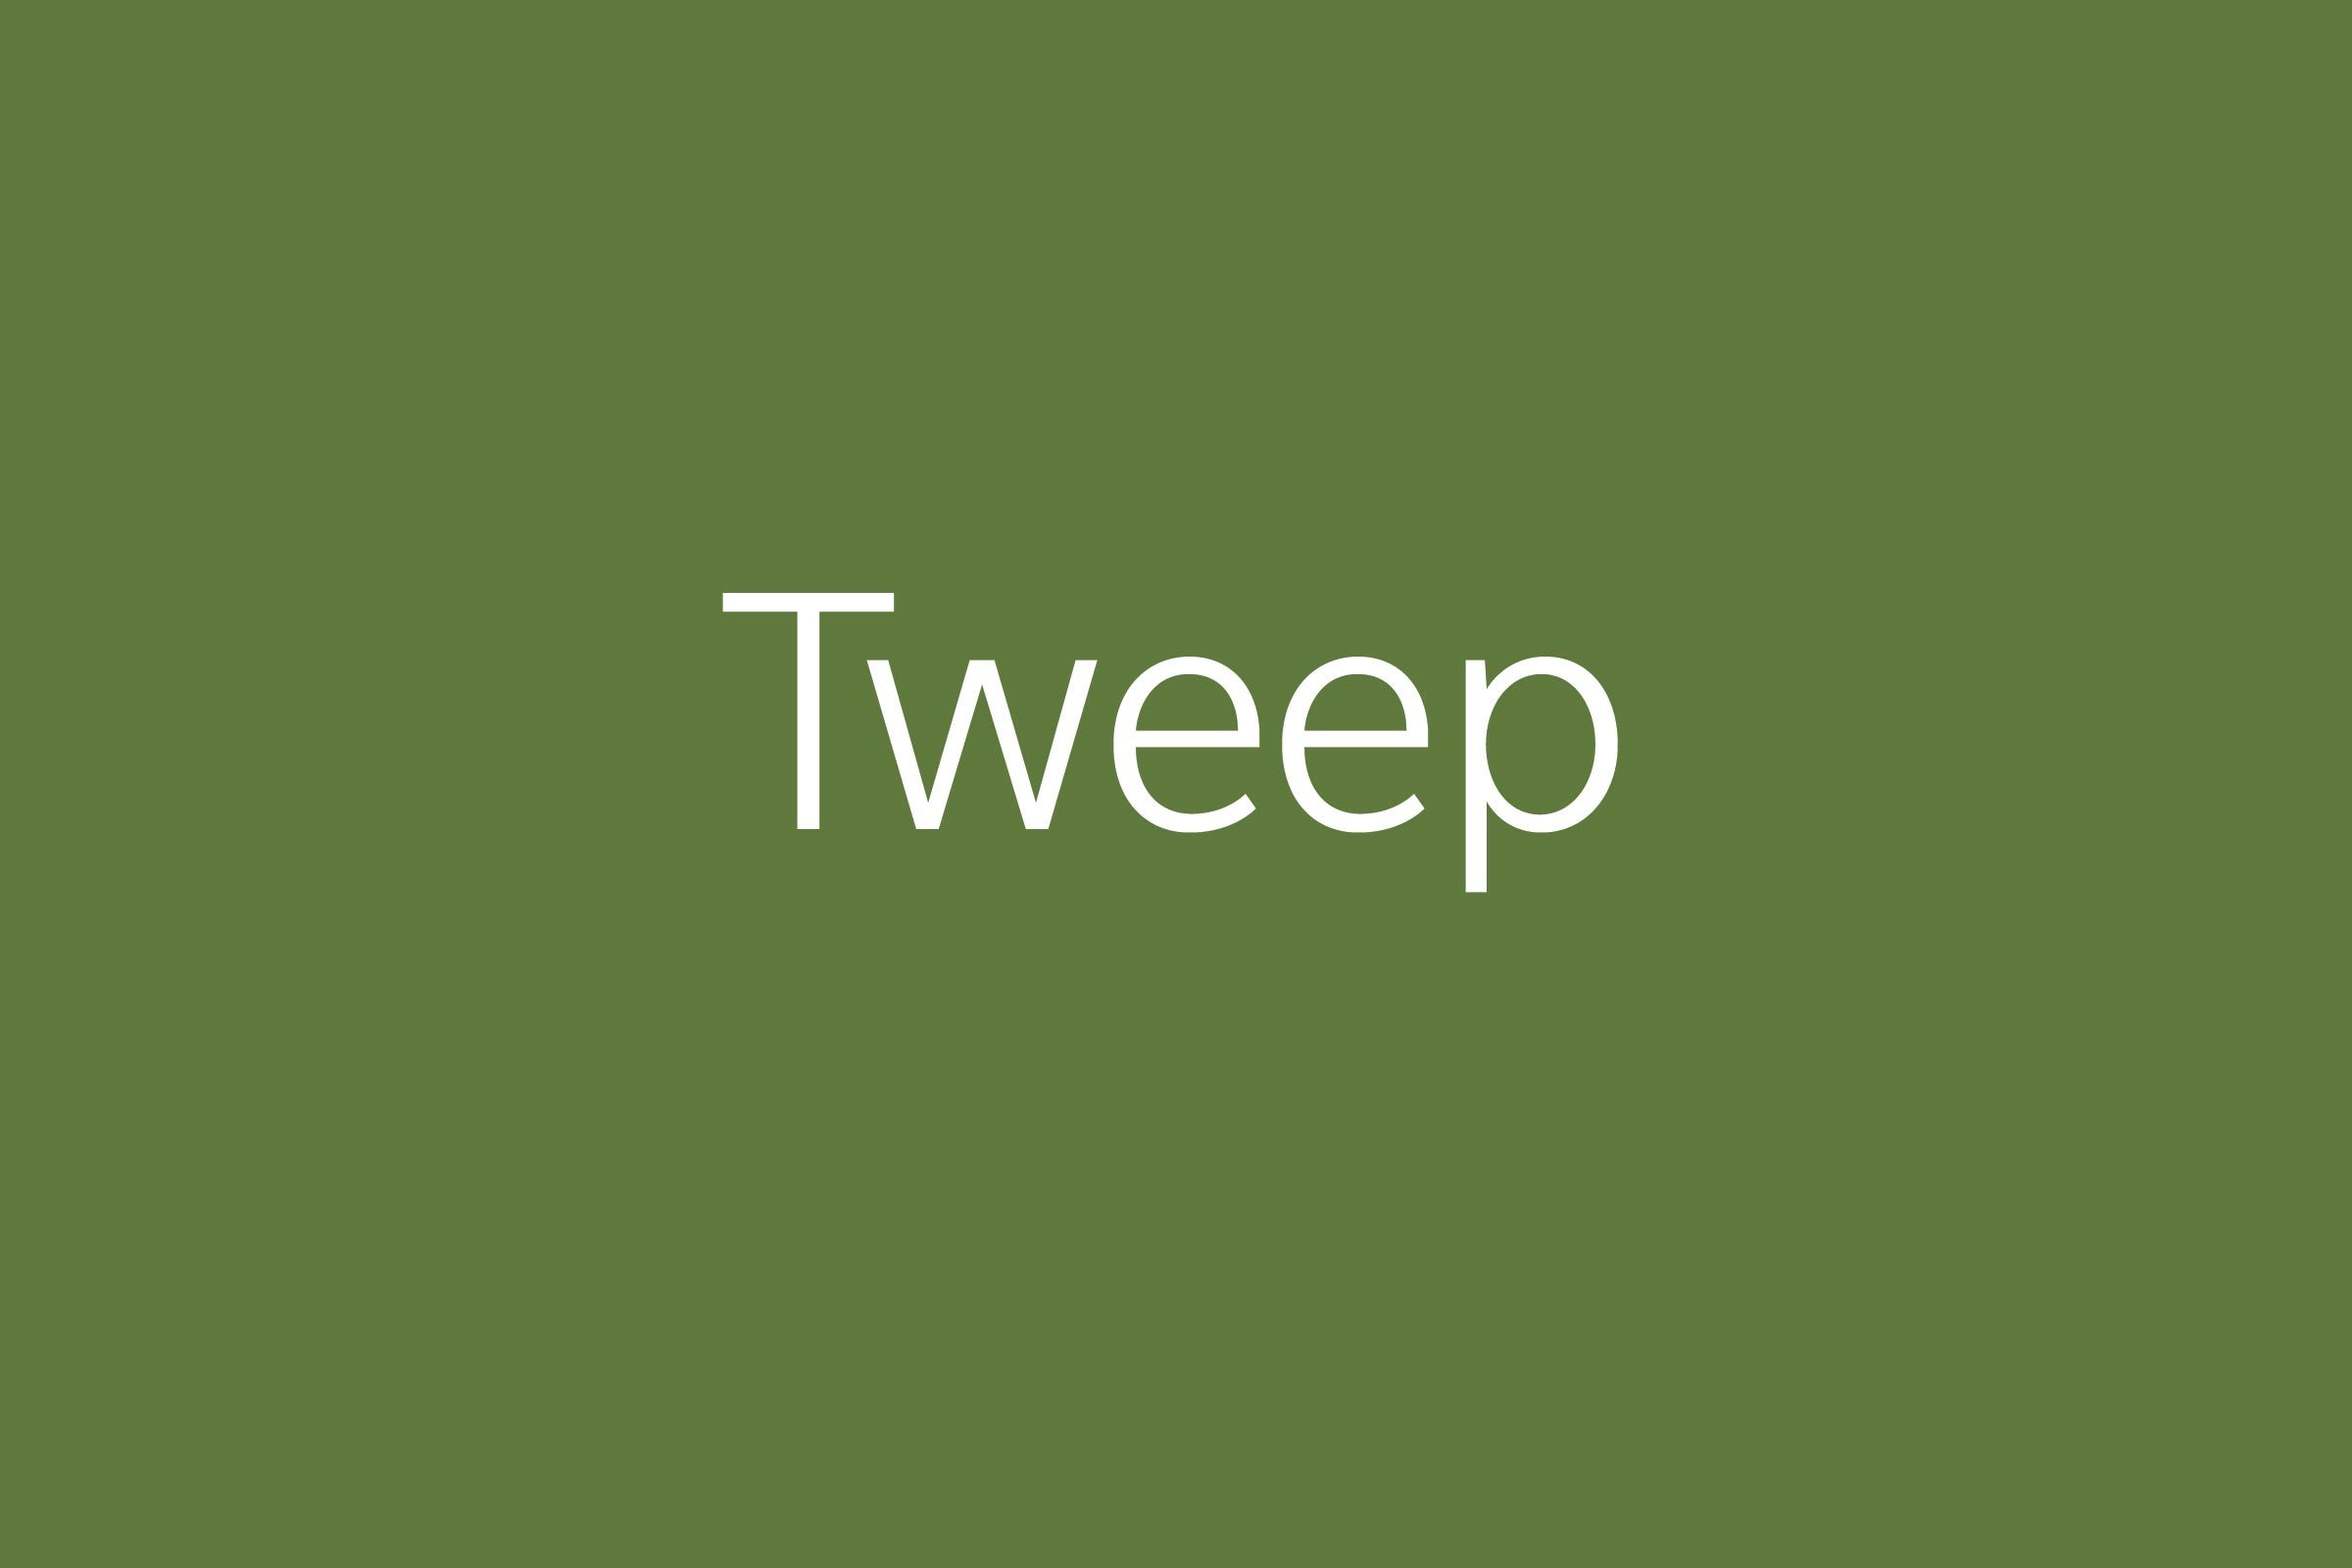 tweep funny word Funny words